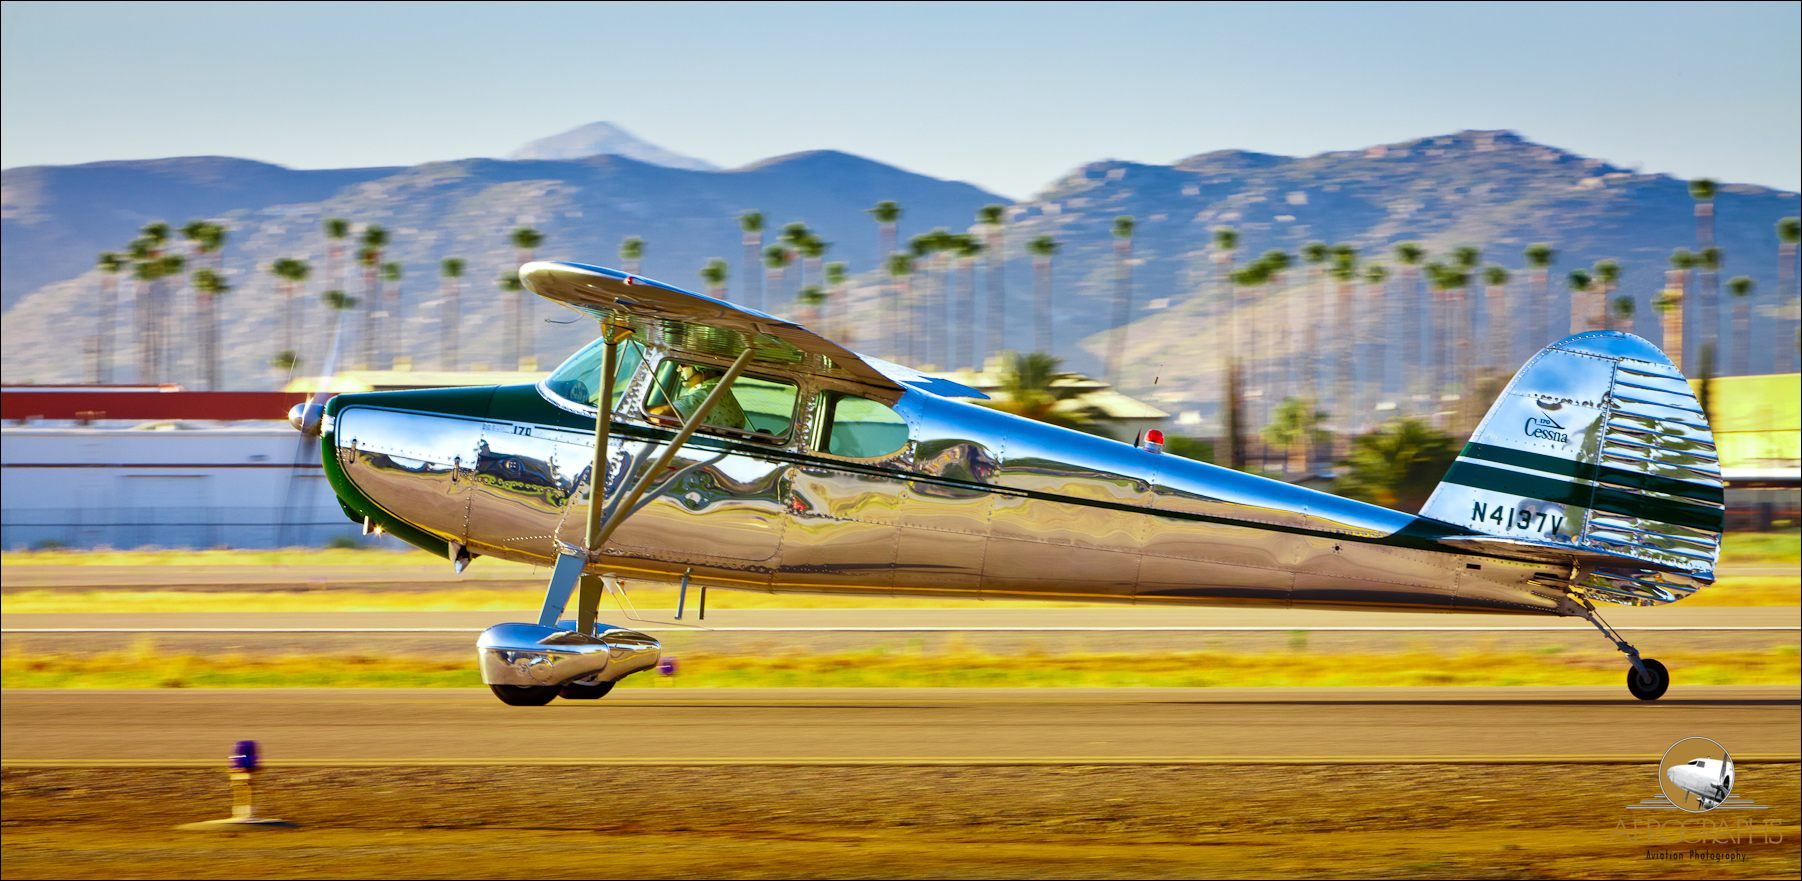 A highly polished Cessna 170 taxis by at Gillespie Field, El Cajon, California.